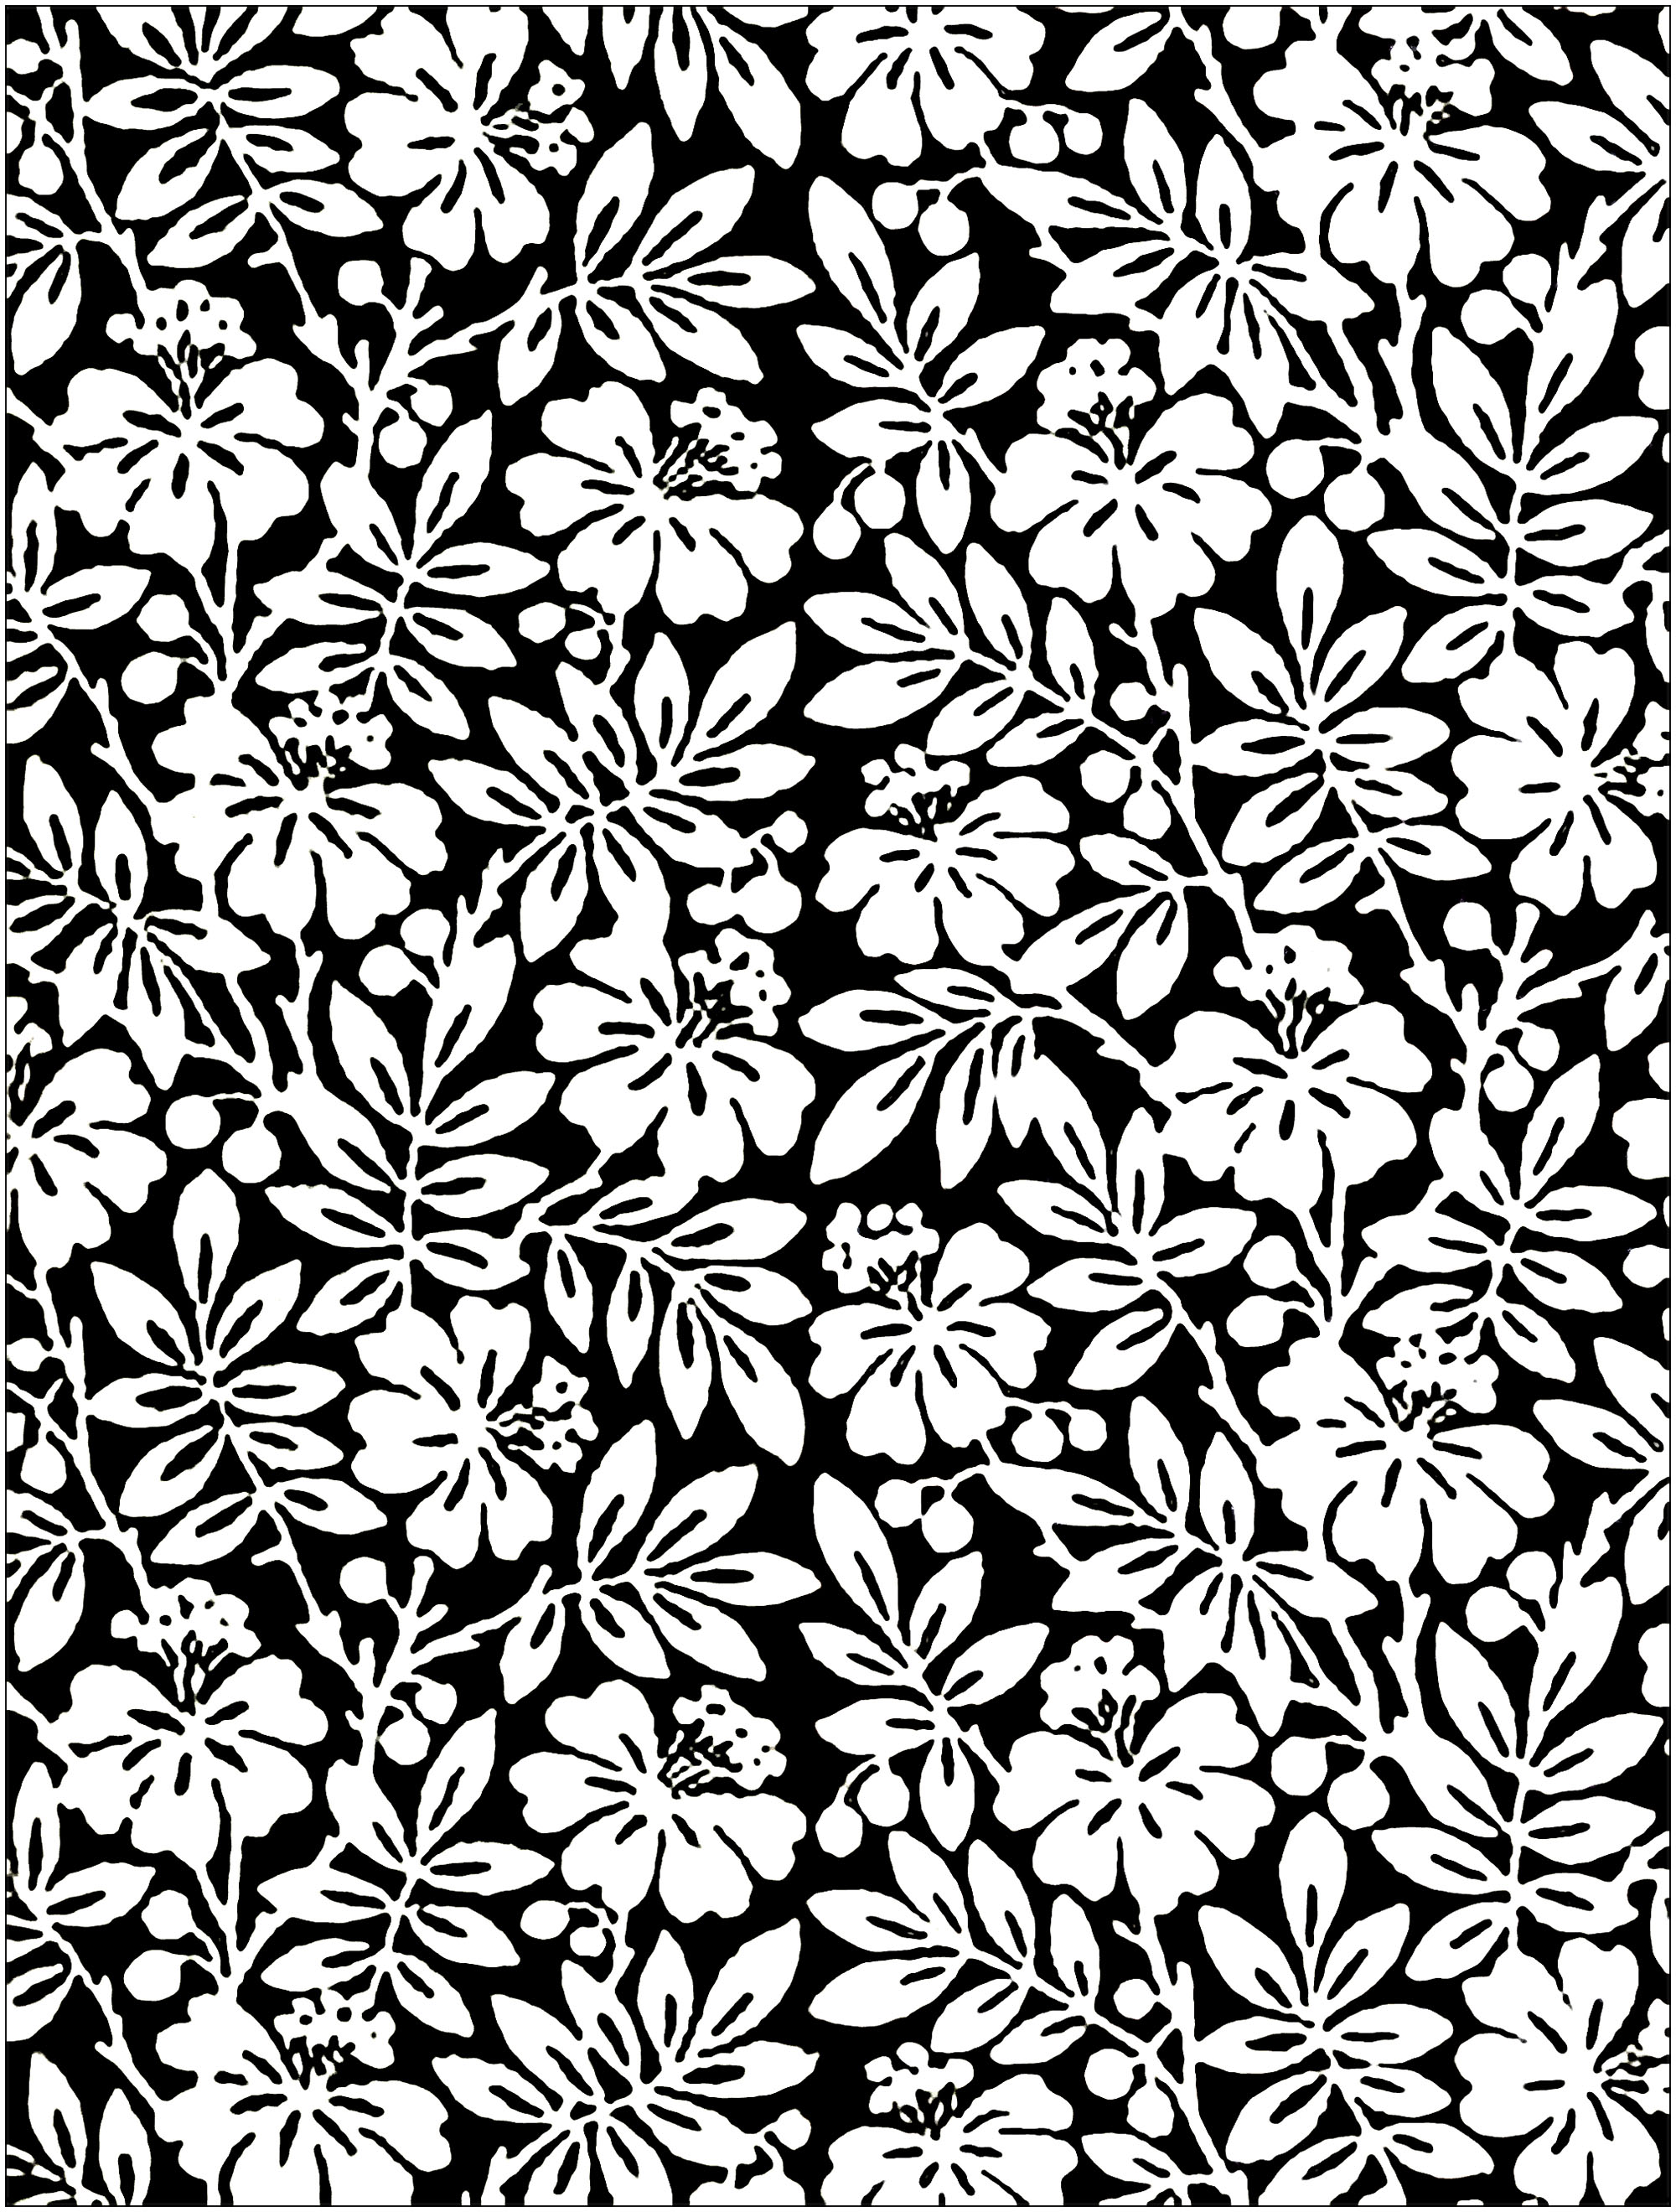 Coloring Black and white Flowers from English 19th Century Wallpaper